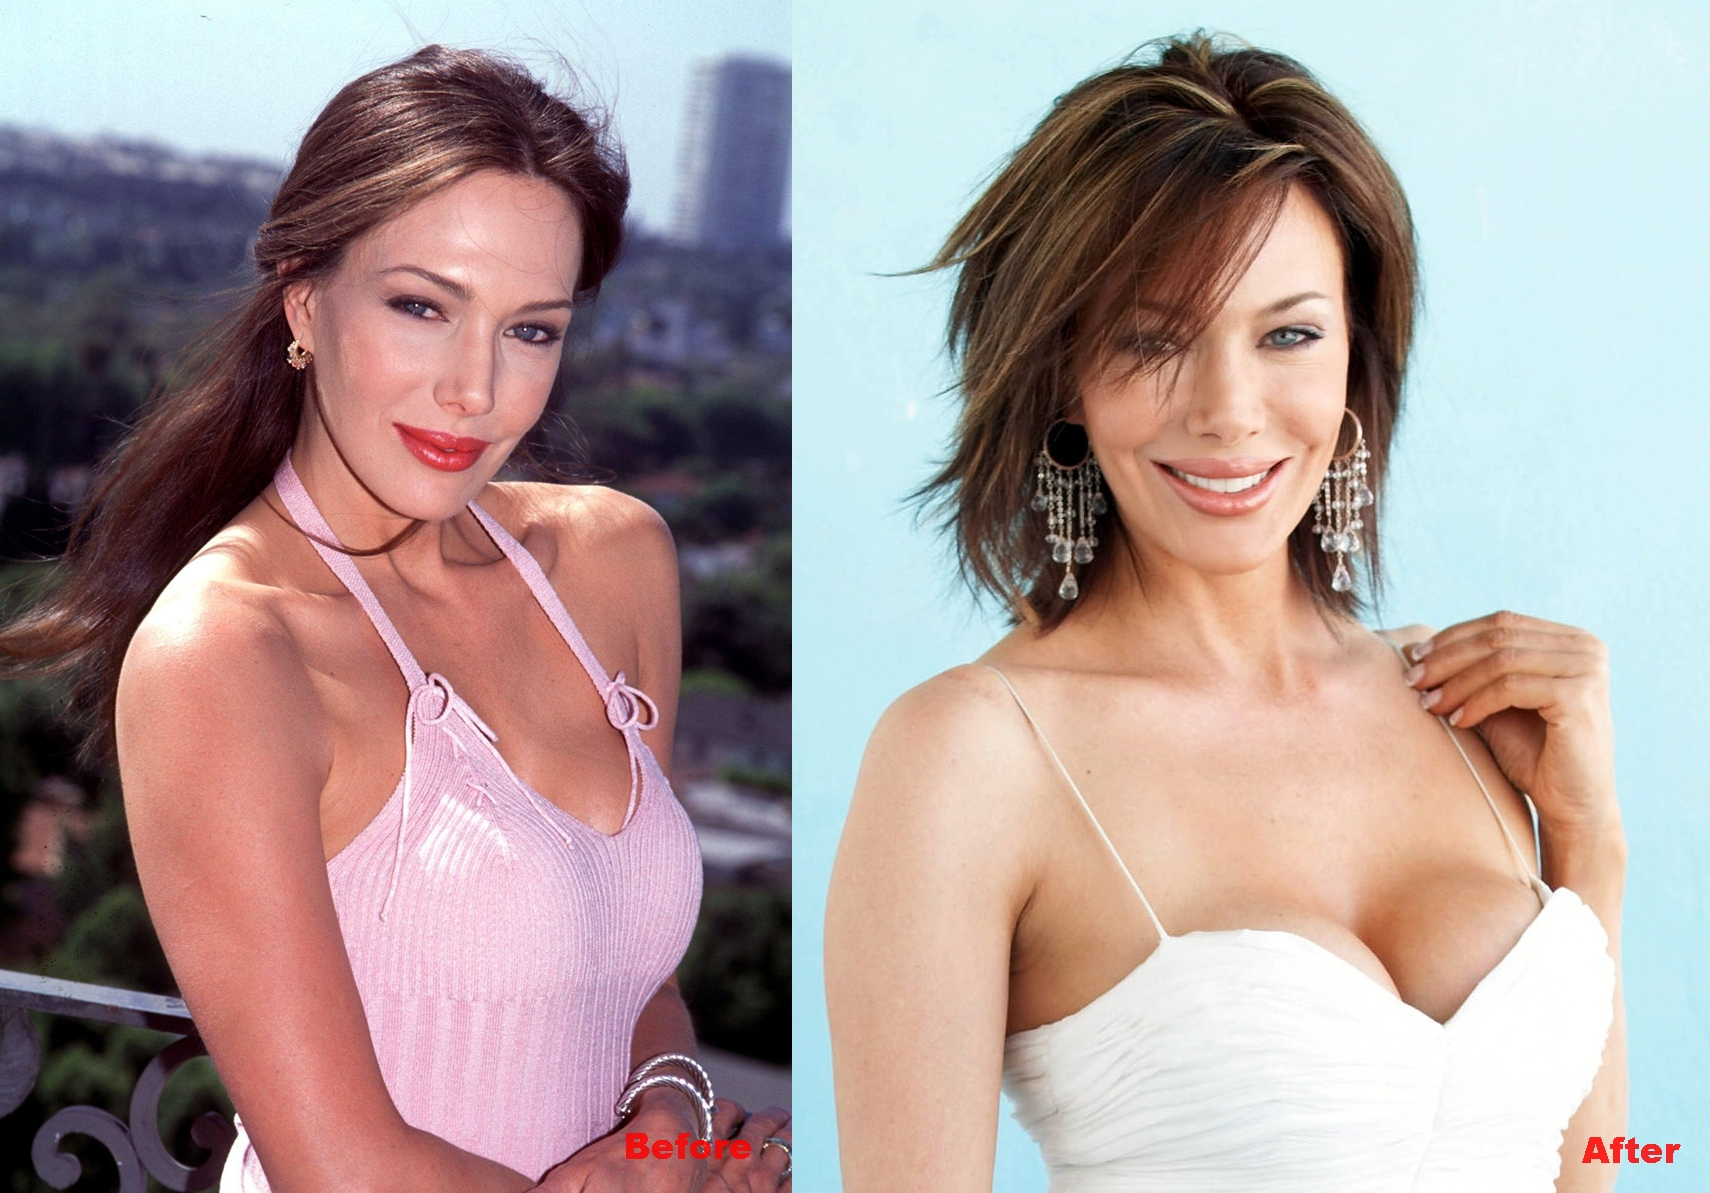 Hunter Tylo breast implants plastic surgery before and after boobs job